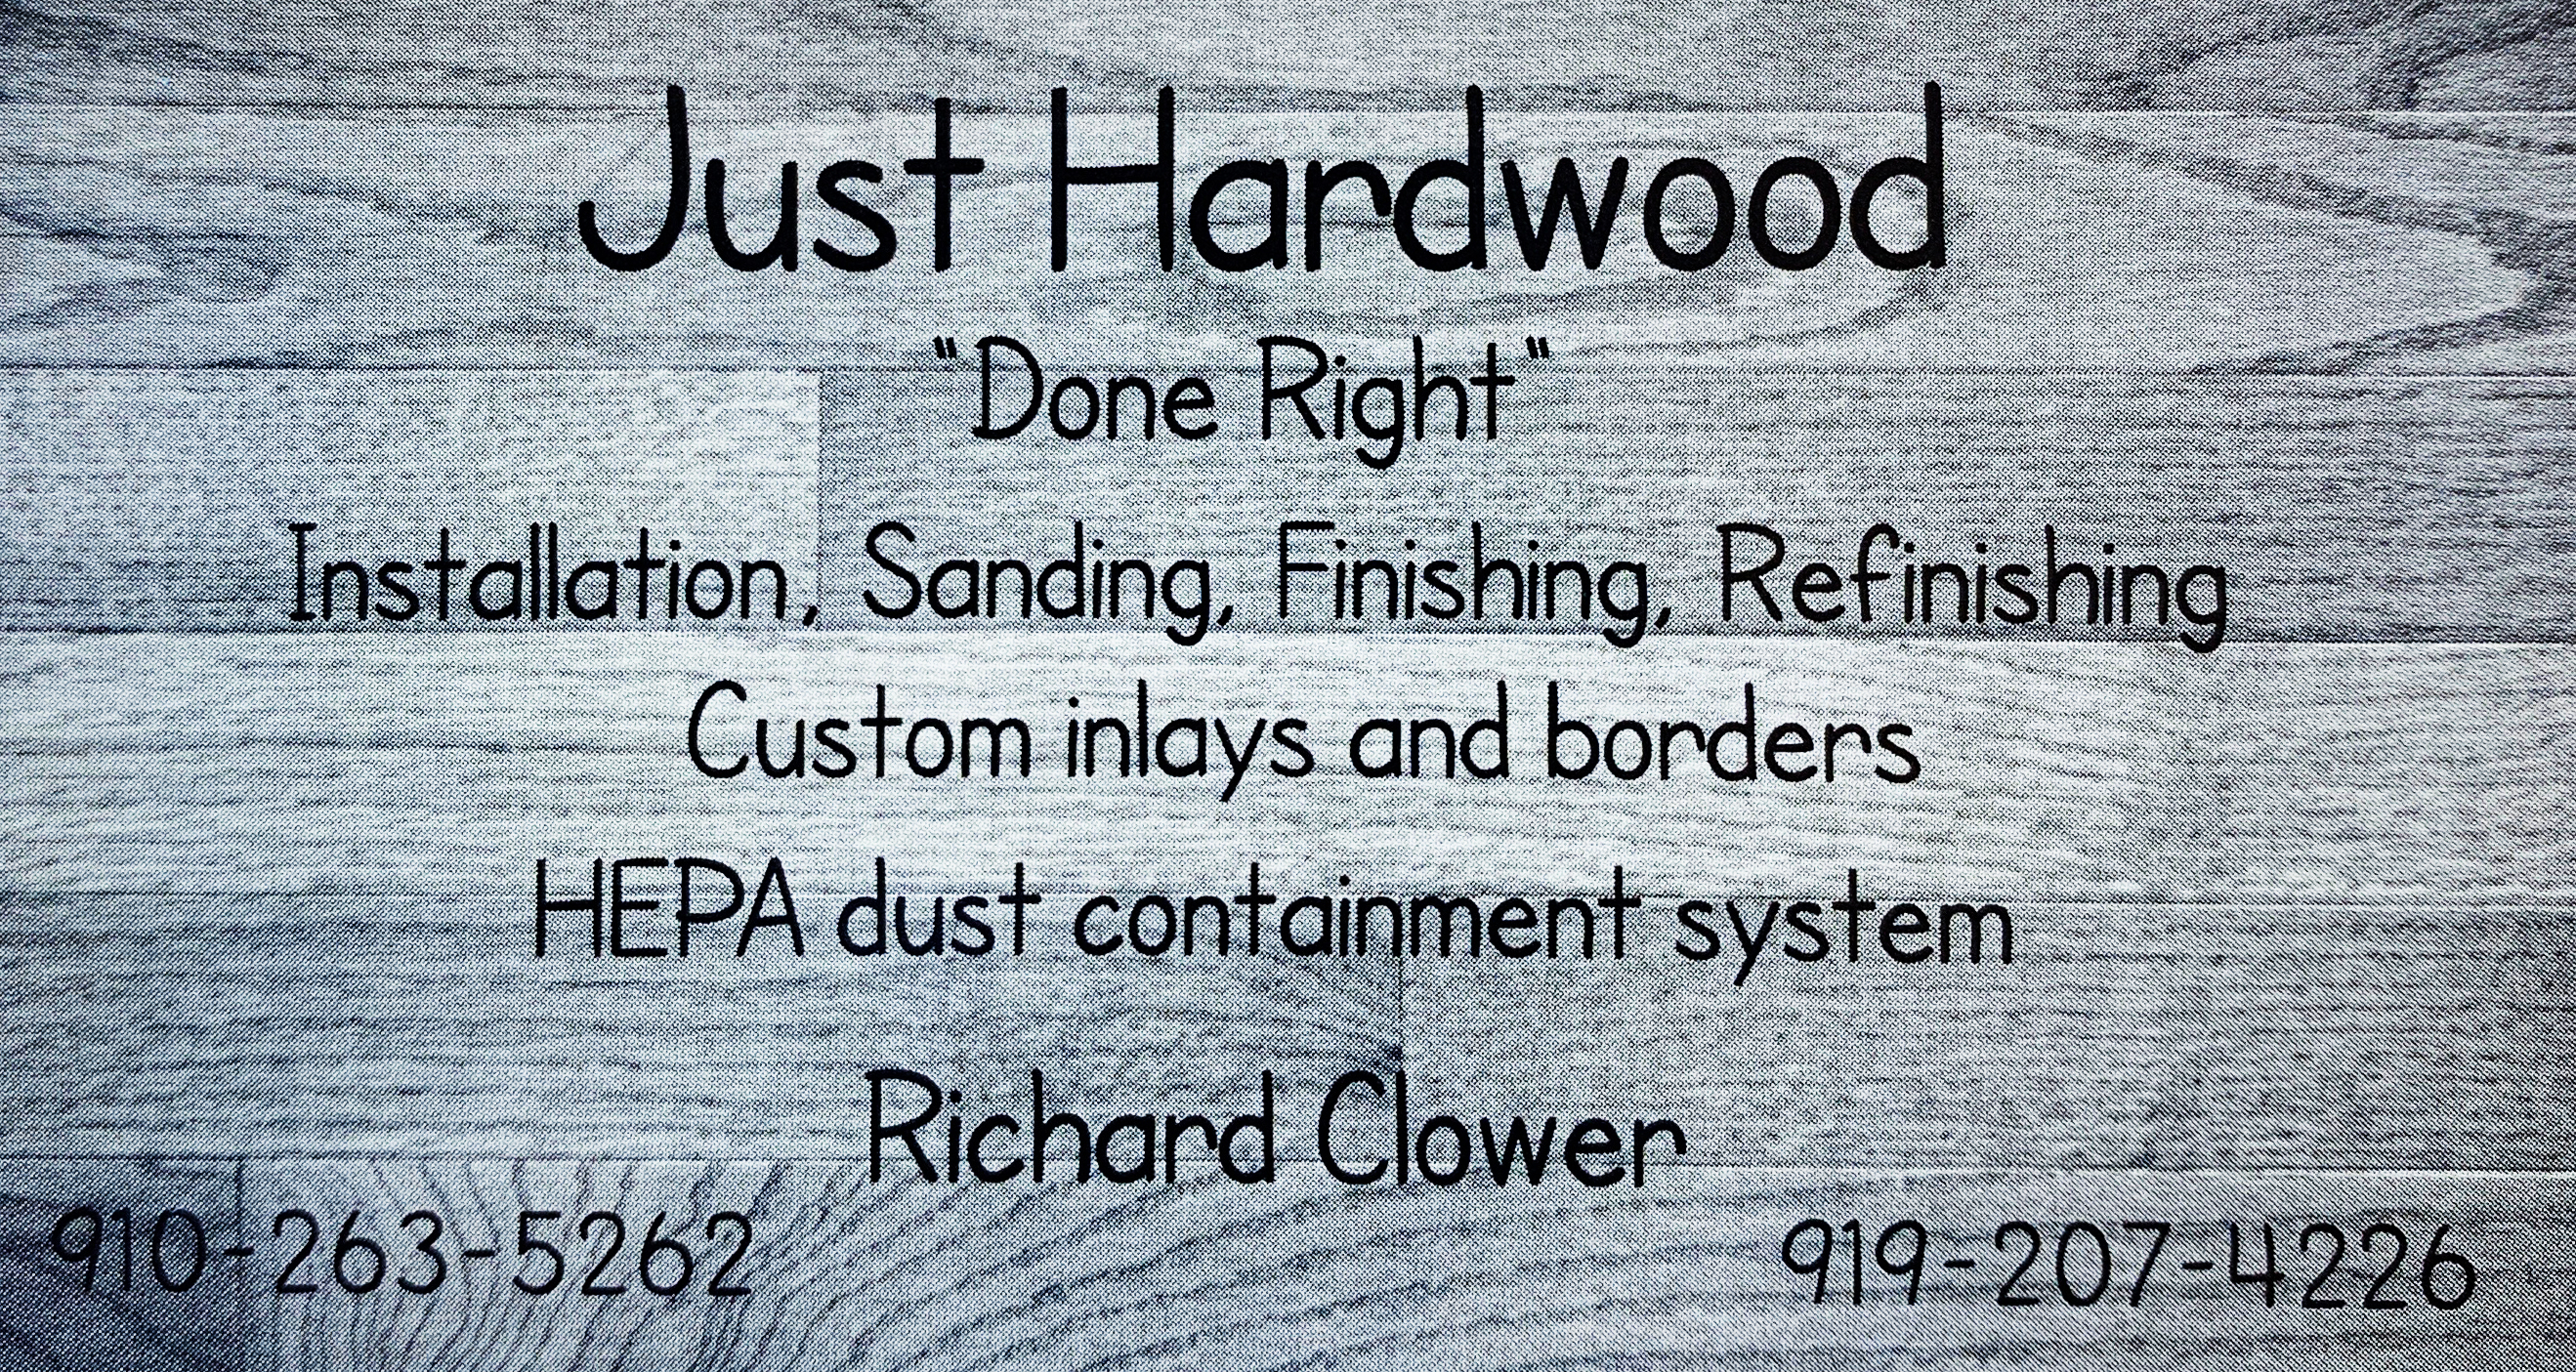 Just Hardwoods